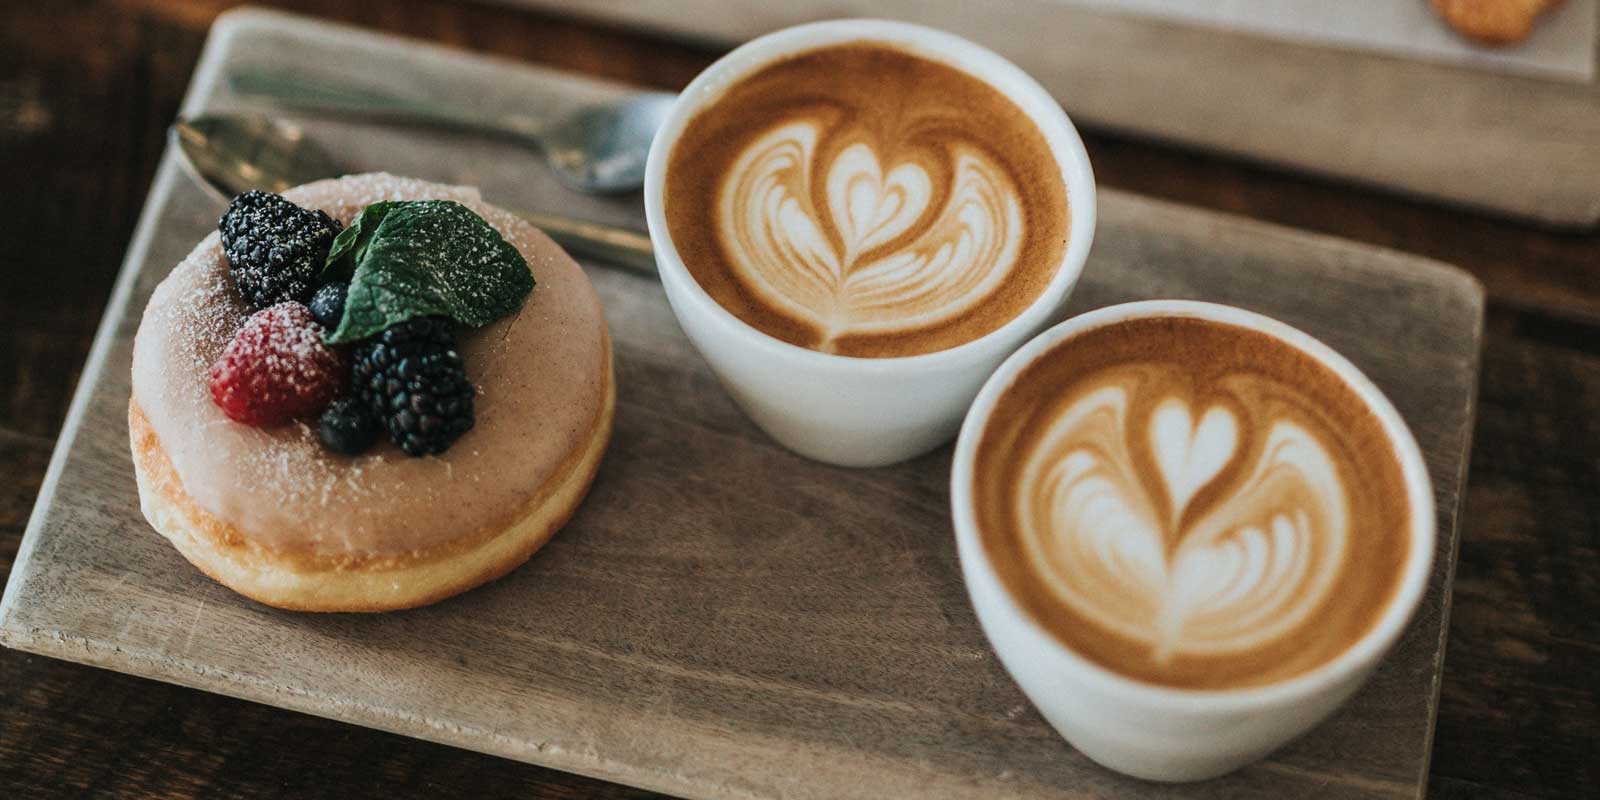 Flatlay photo of 2 cappucinos and a donut with berries on top.